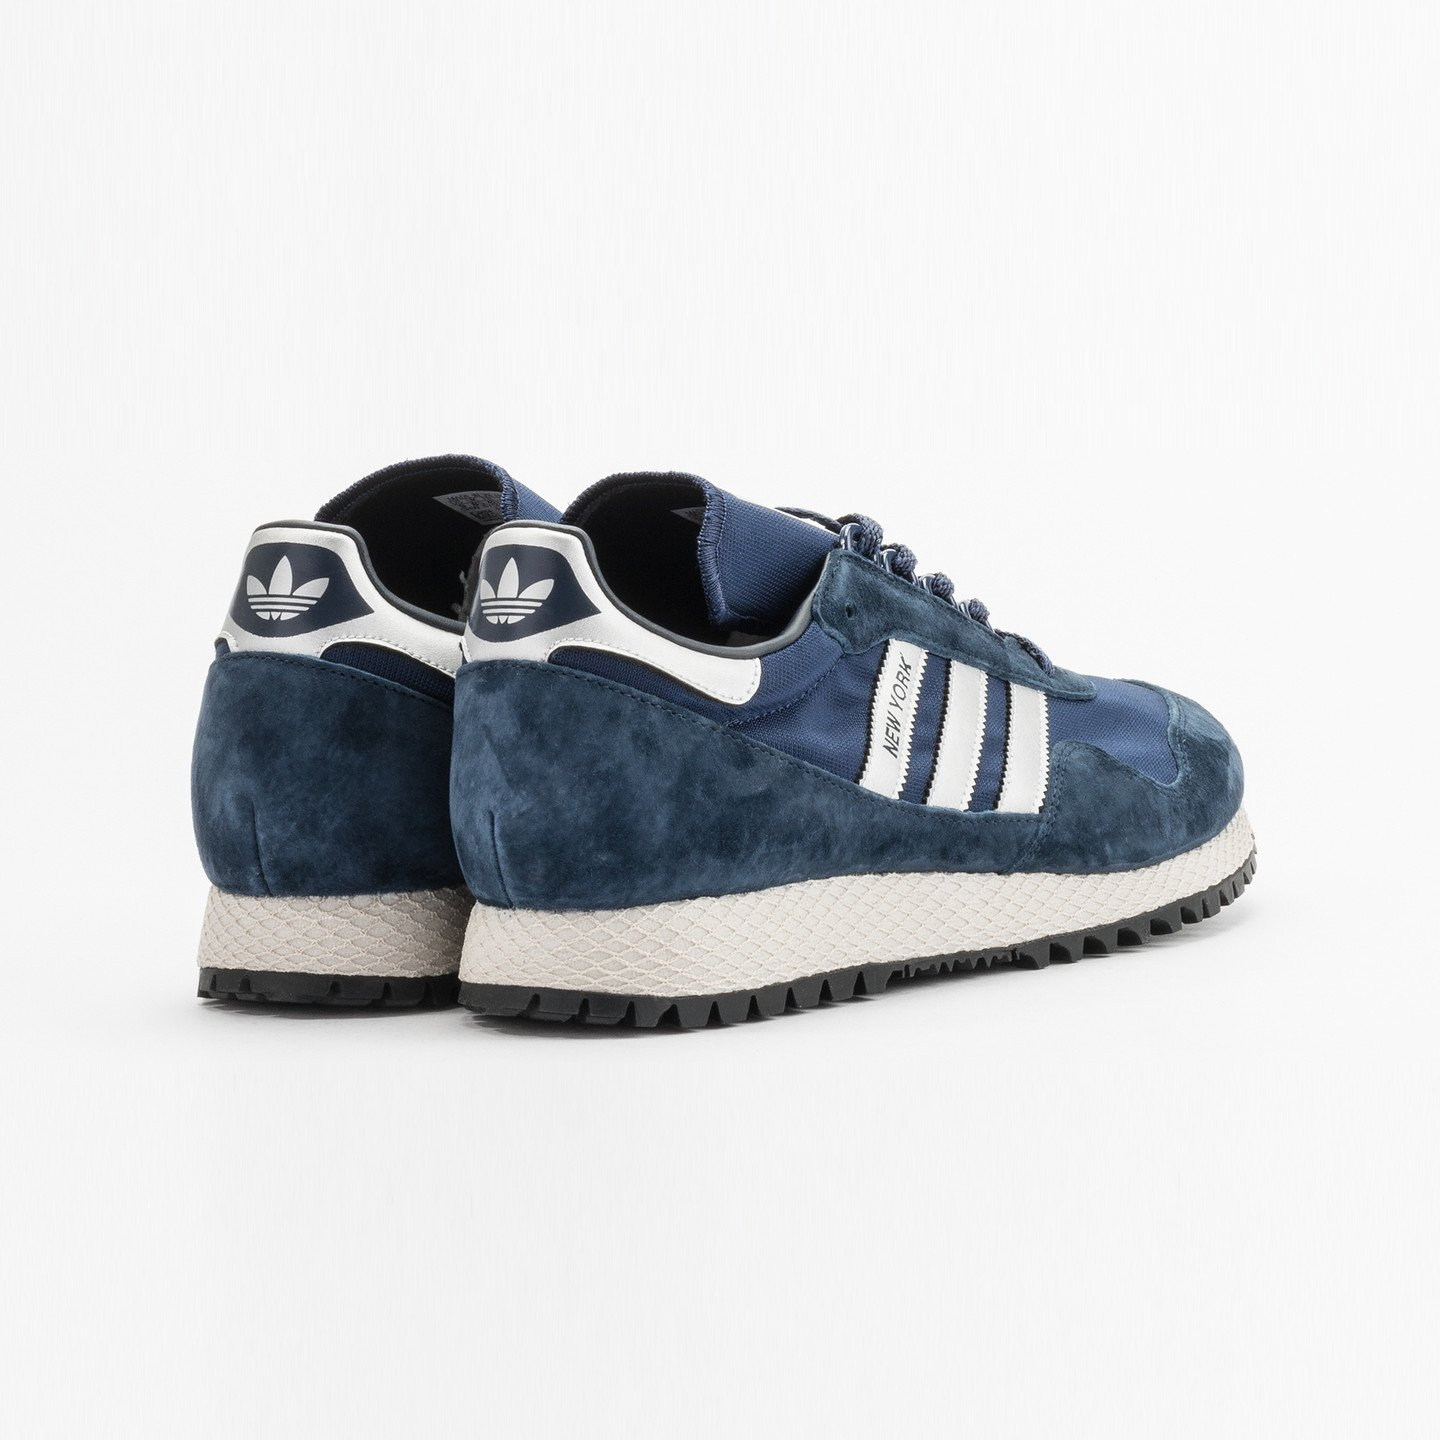 Adidas New York Collegiate Navy / Metallic Silver BB1188-46